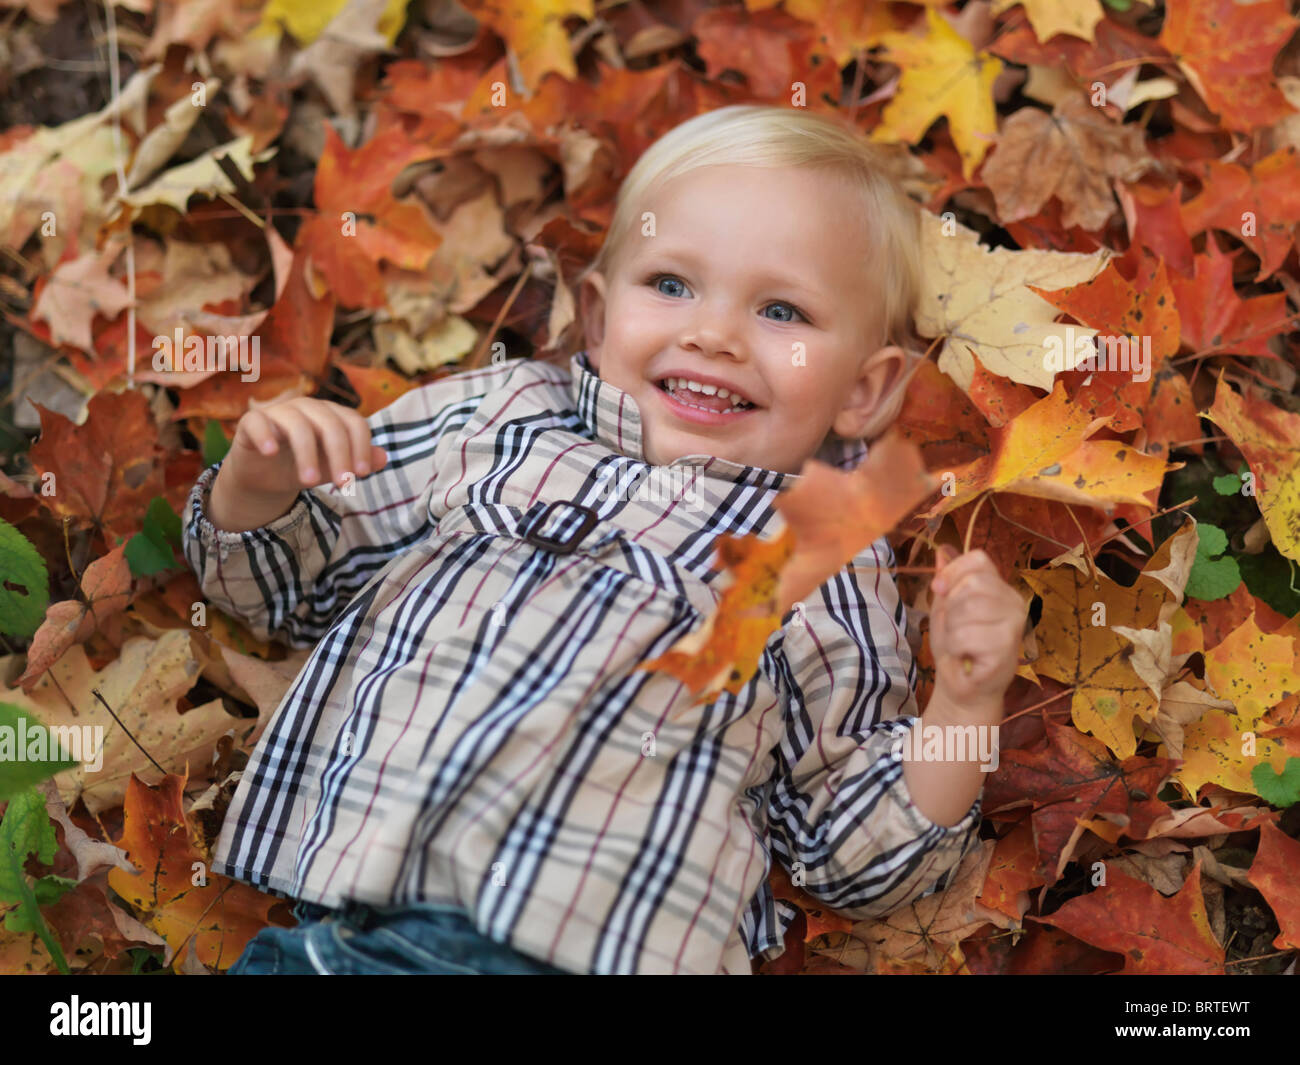 Happy two year old girl lying on fallen tree leaves in autumn nature - Stock Image